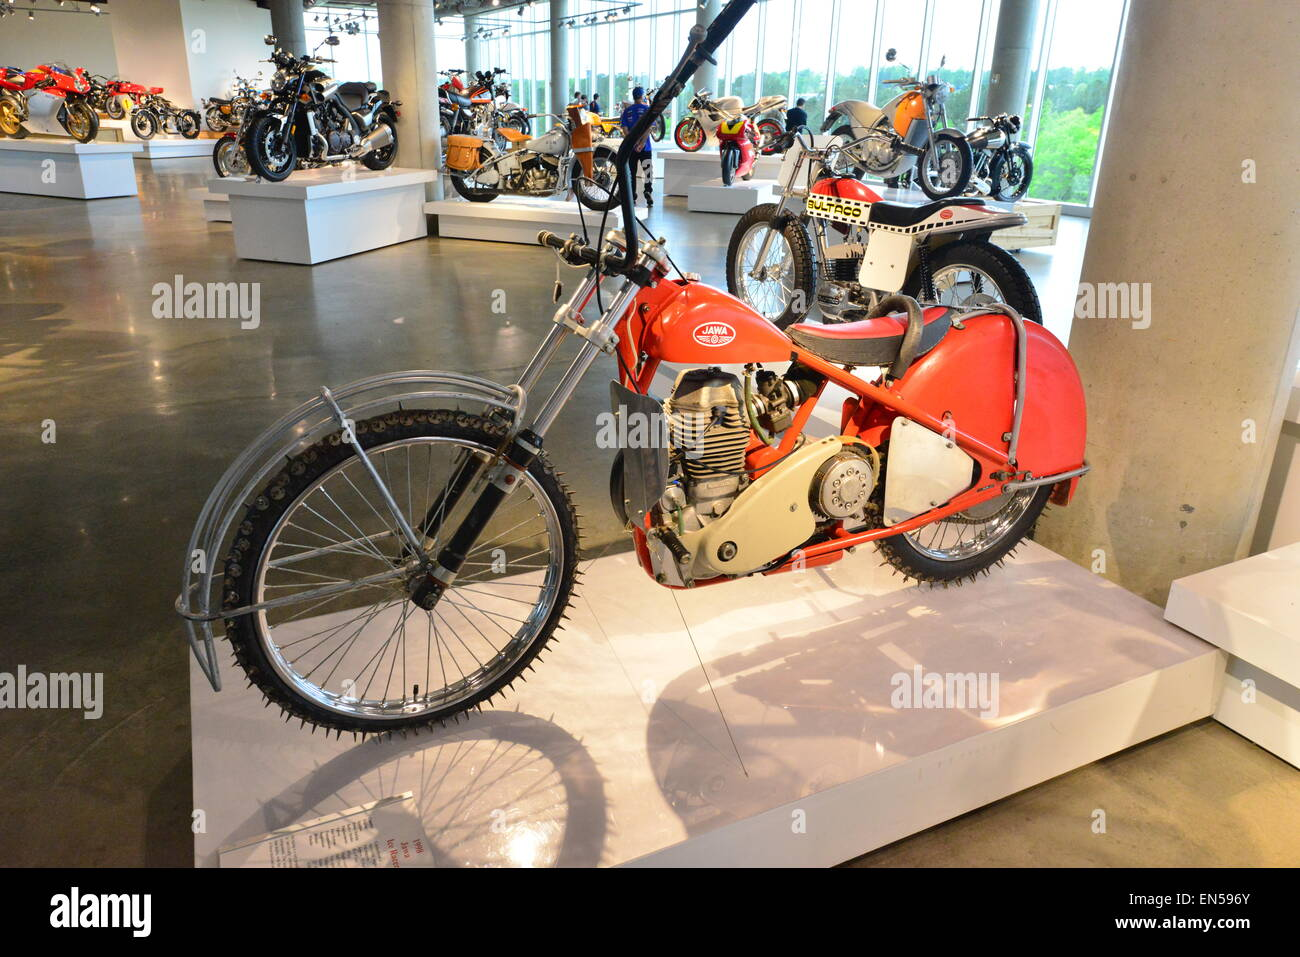 Japanese Classic Bike Stock Photos & Japanese Classic Bike